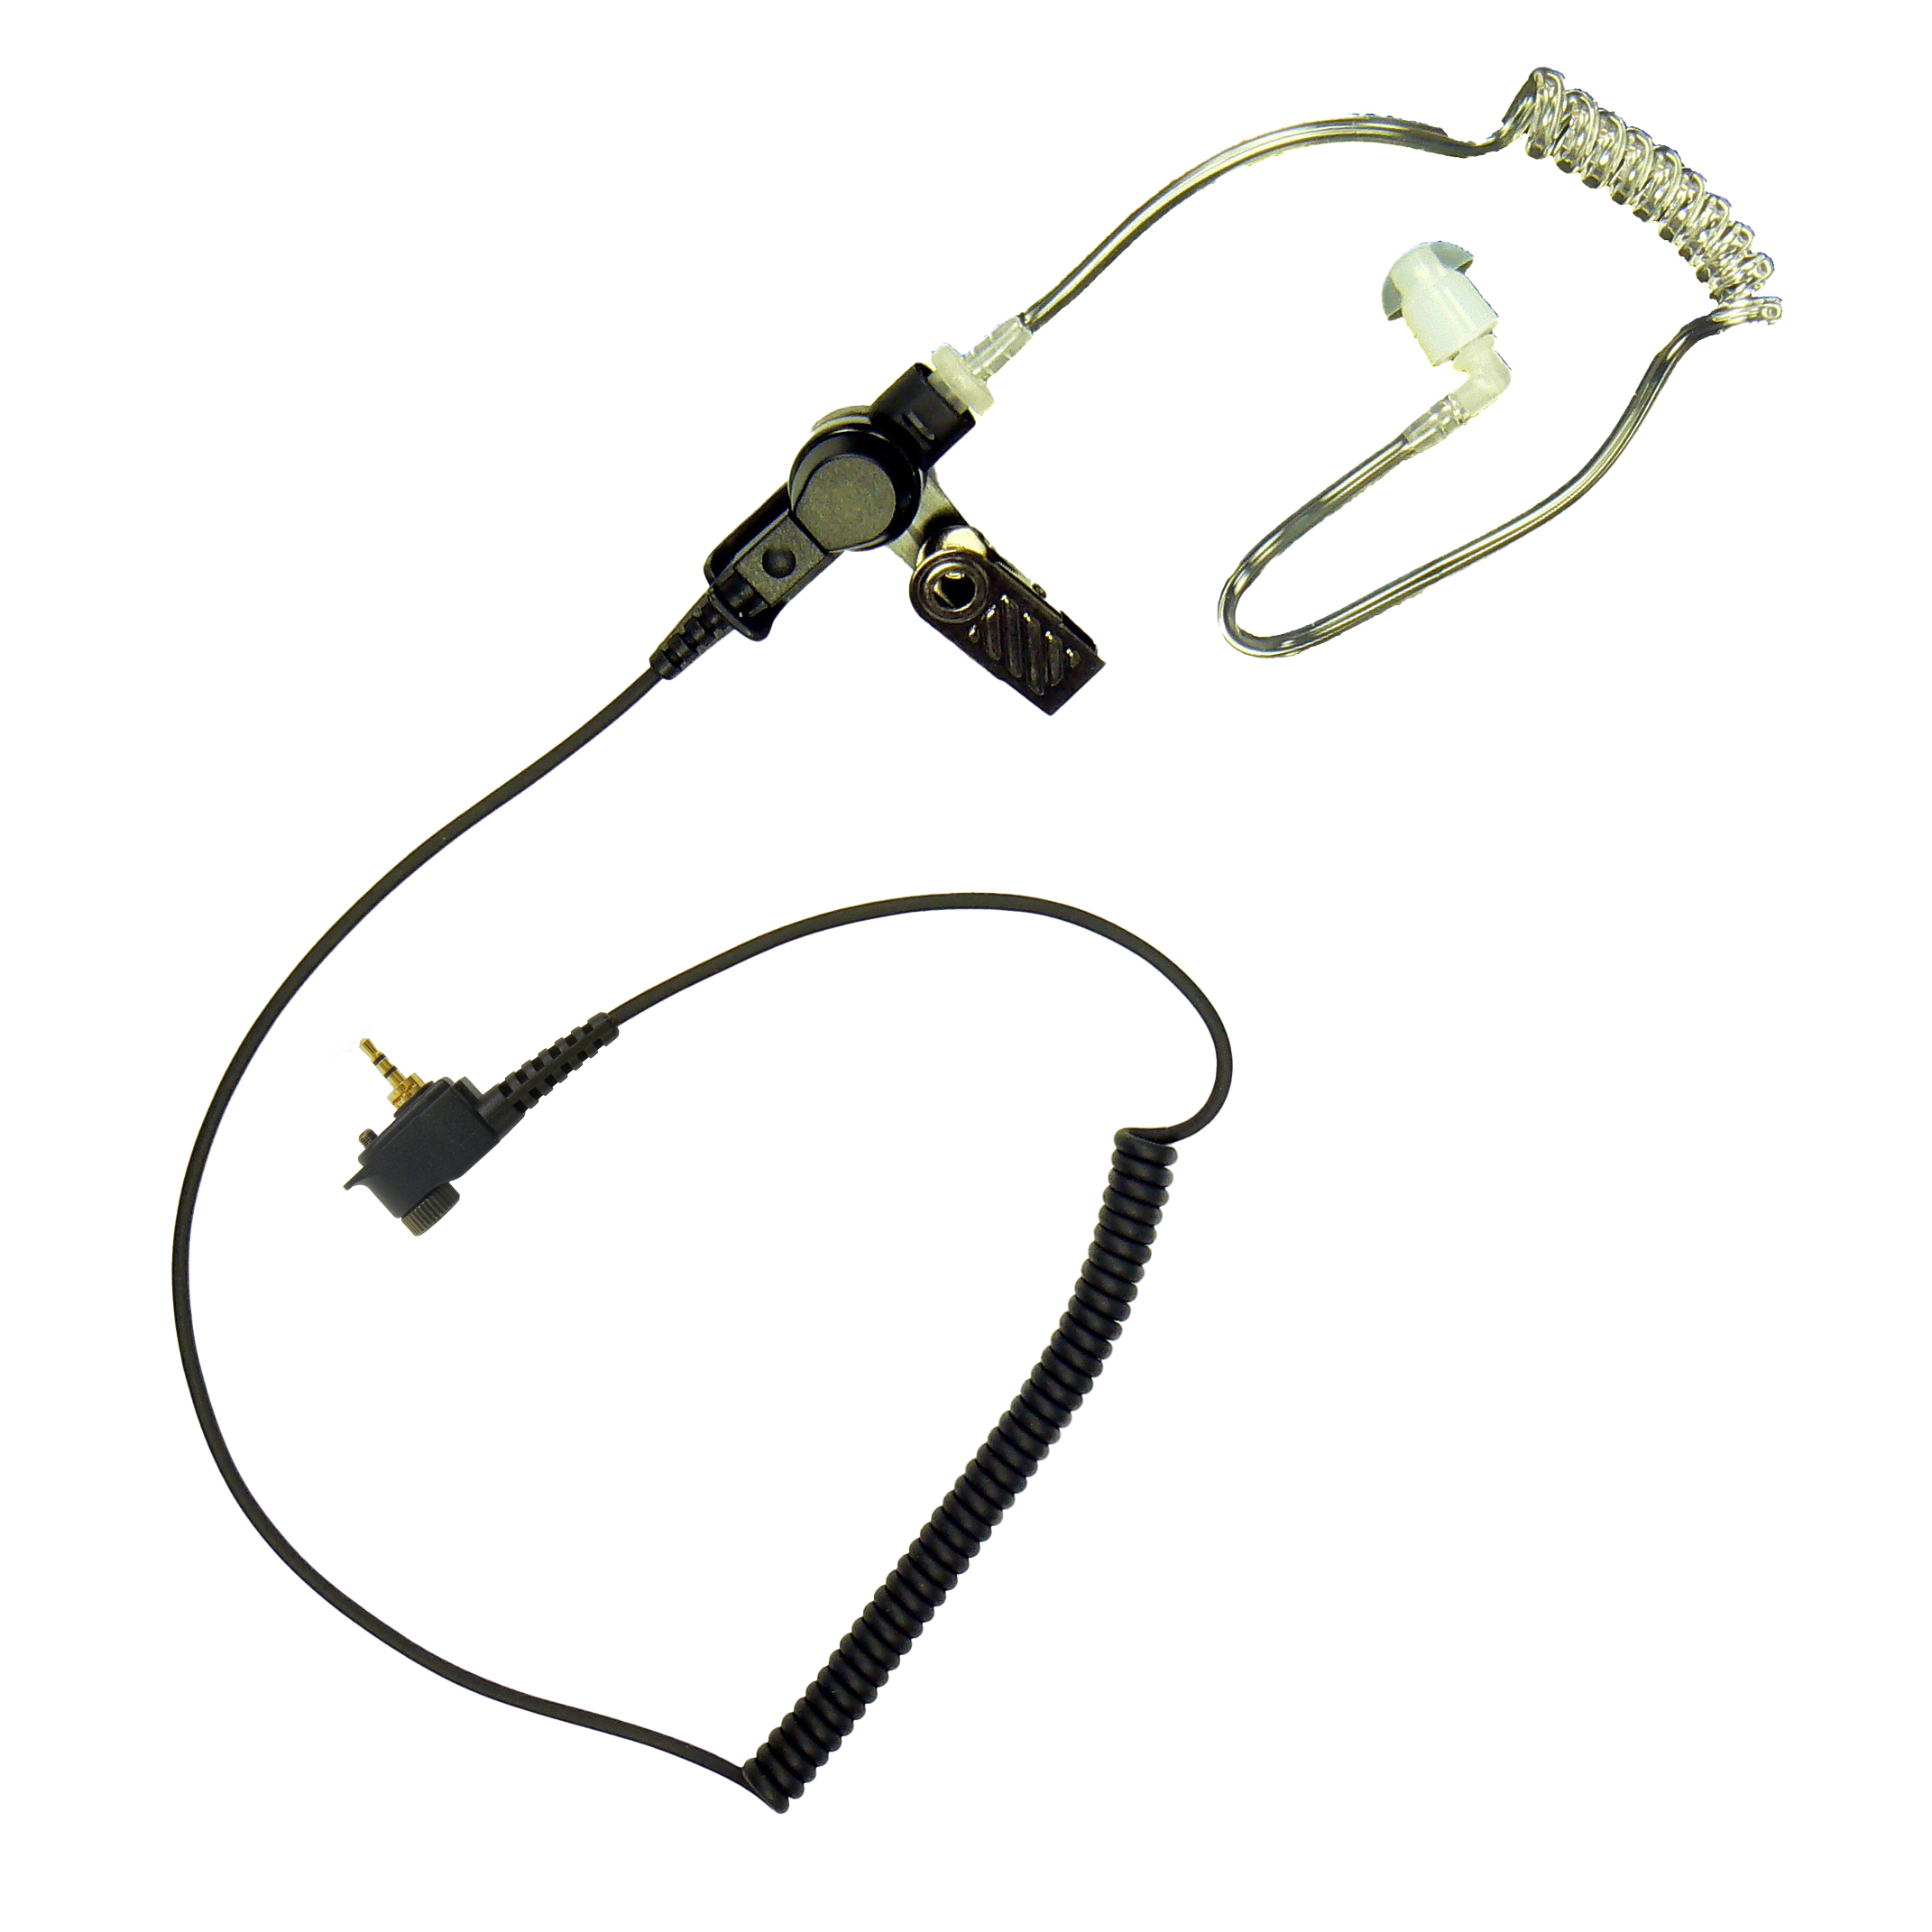 Listen only earpiece acoustic tube for Motorola Tetra Radio